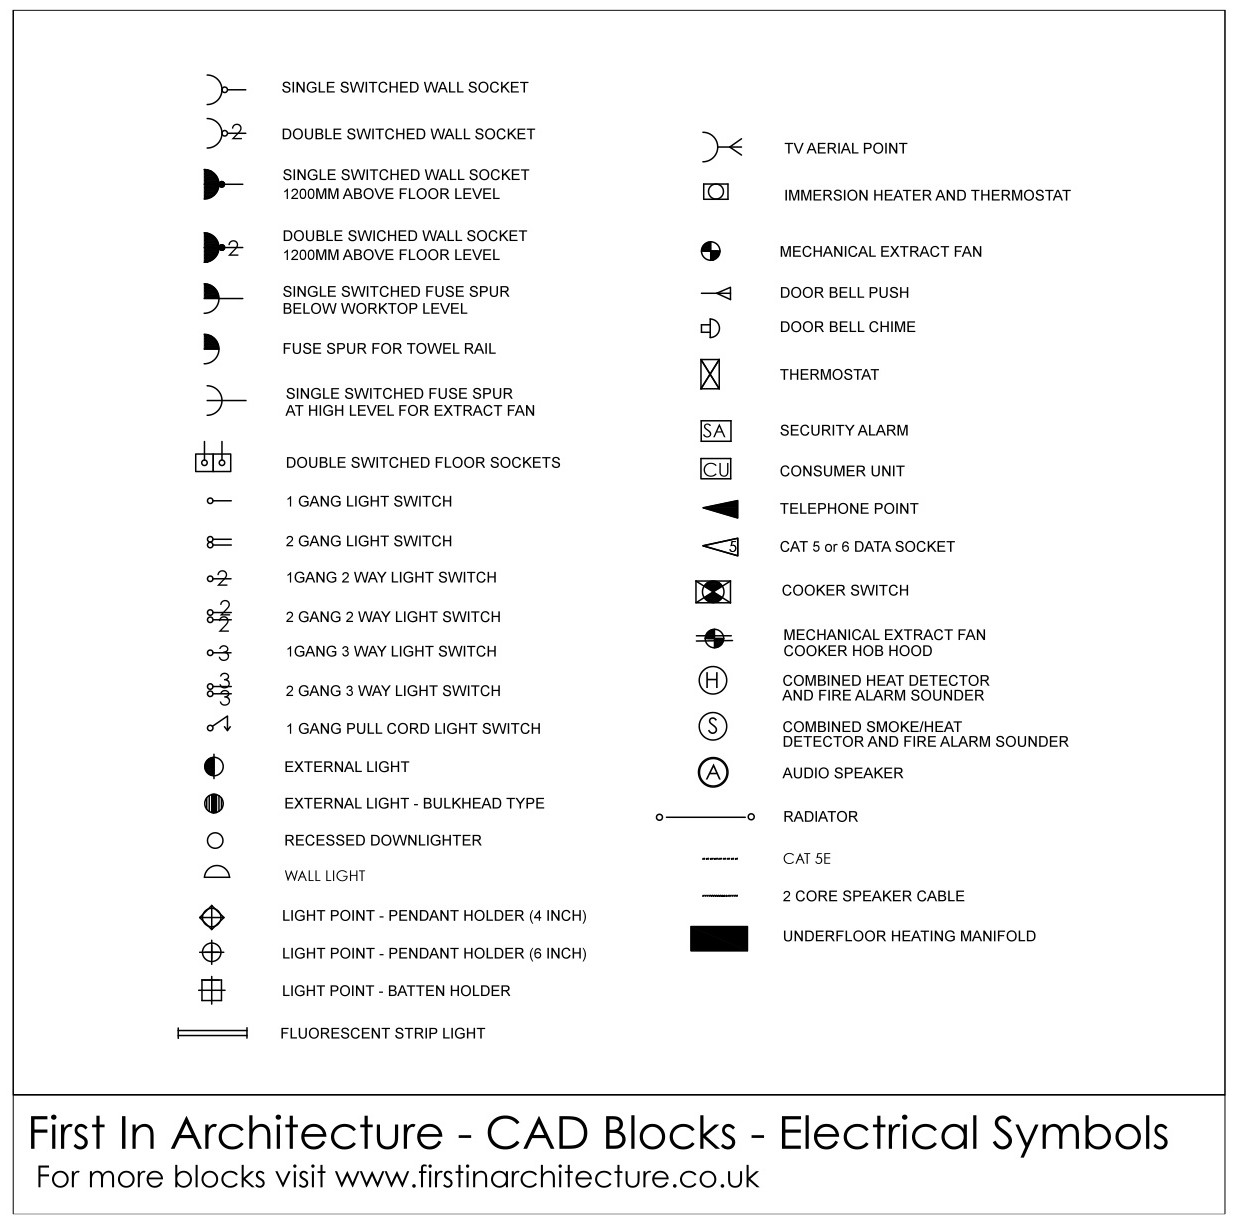 Fia Electrical Symbols Cad Blocks E on ceiling speaker wiring diagram